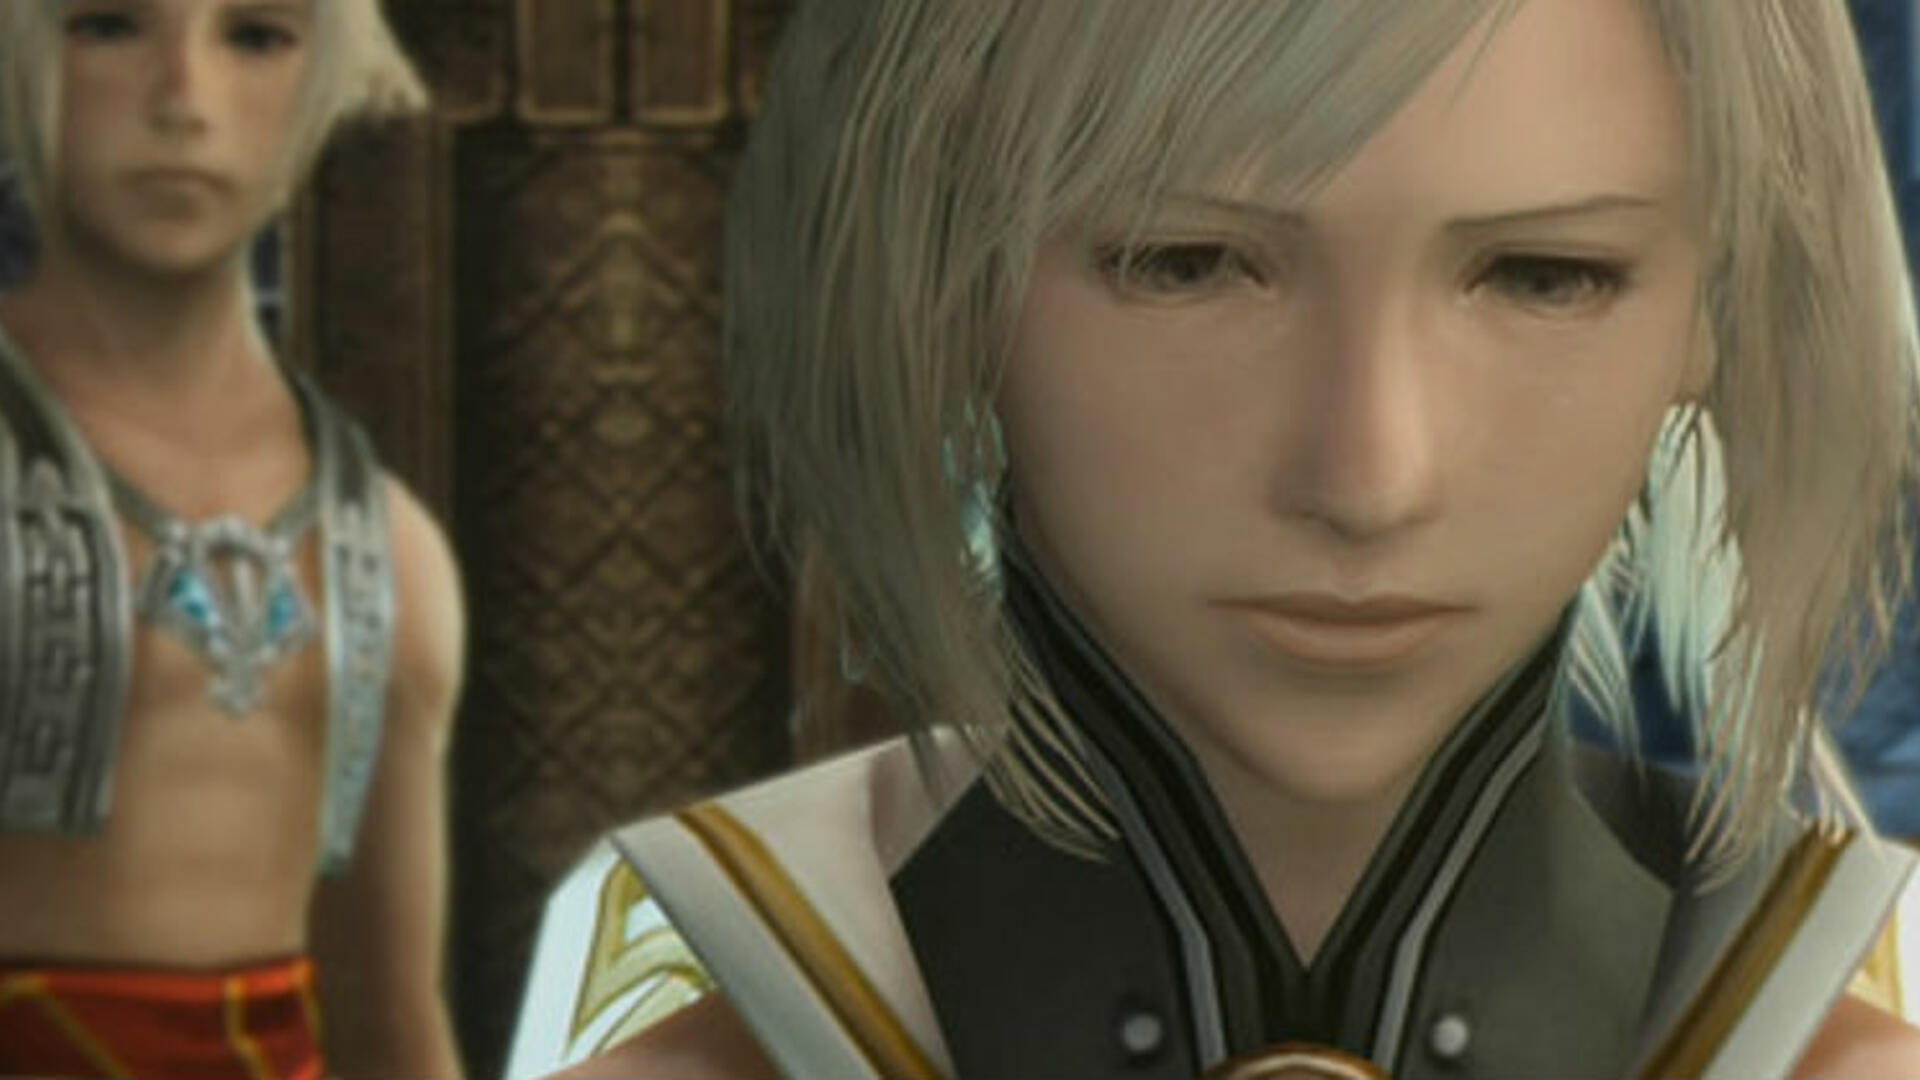 The New Final Fantasy XII Zodiac Age Story Trailer is Very Game of Thrones-esque